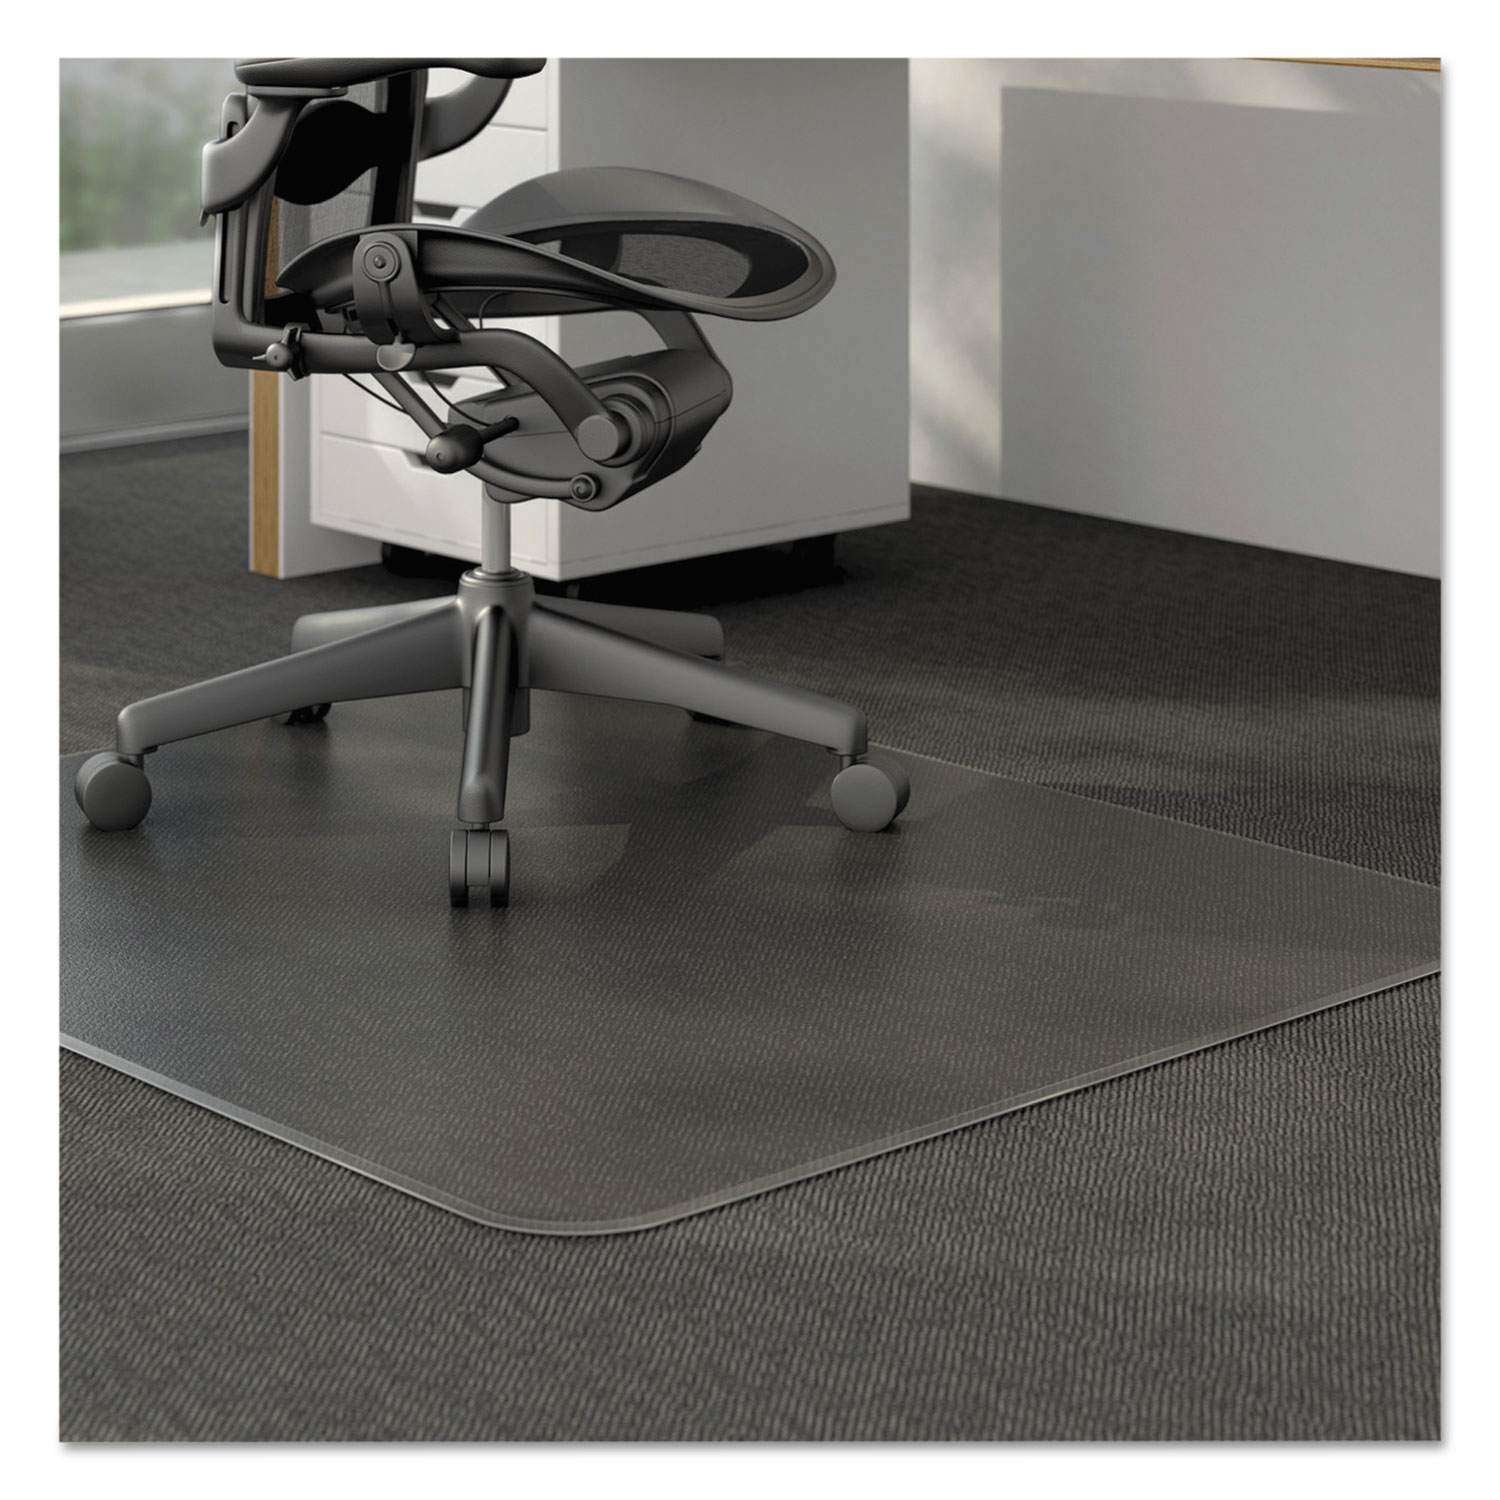 Moderate Use Studded Chair Mat for Low Pile Carpet by